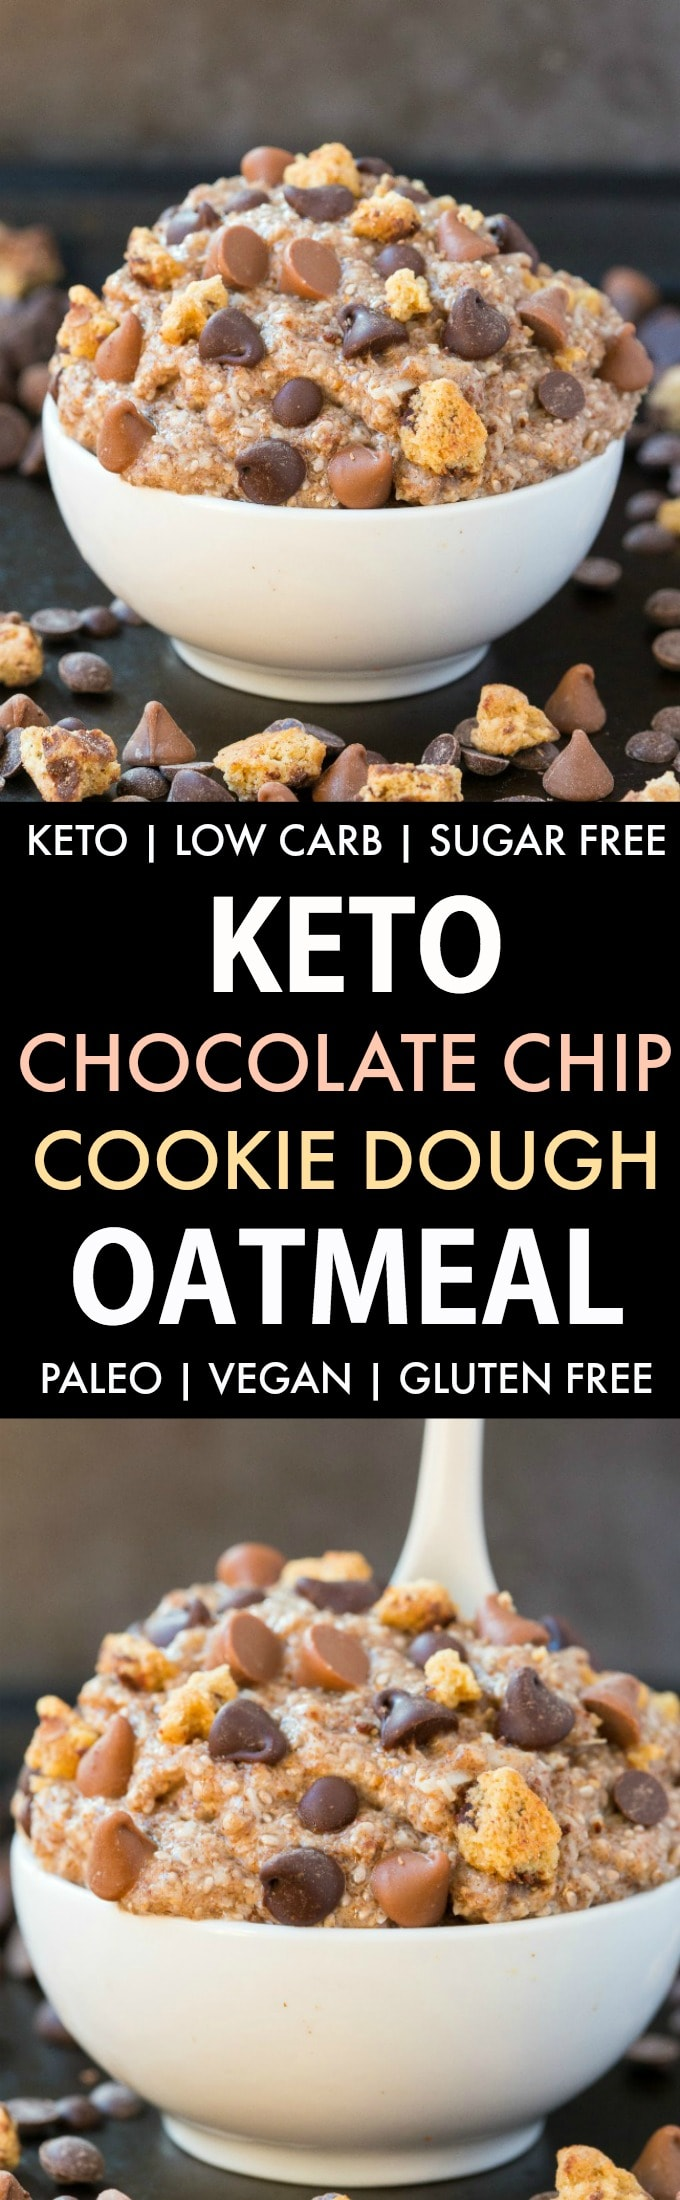 Low Carb Keto Chocolate Chip Cookie Dough Oatmeal in a collage